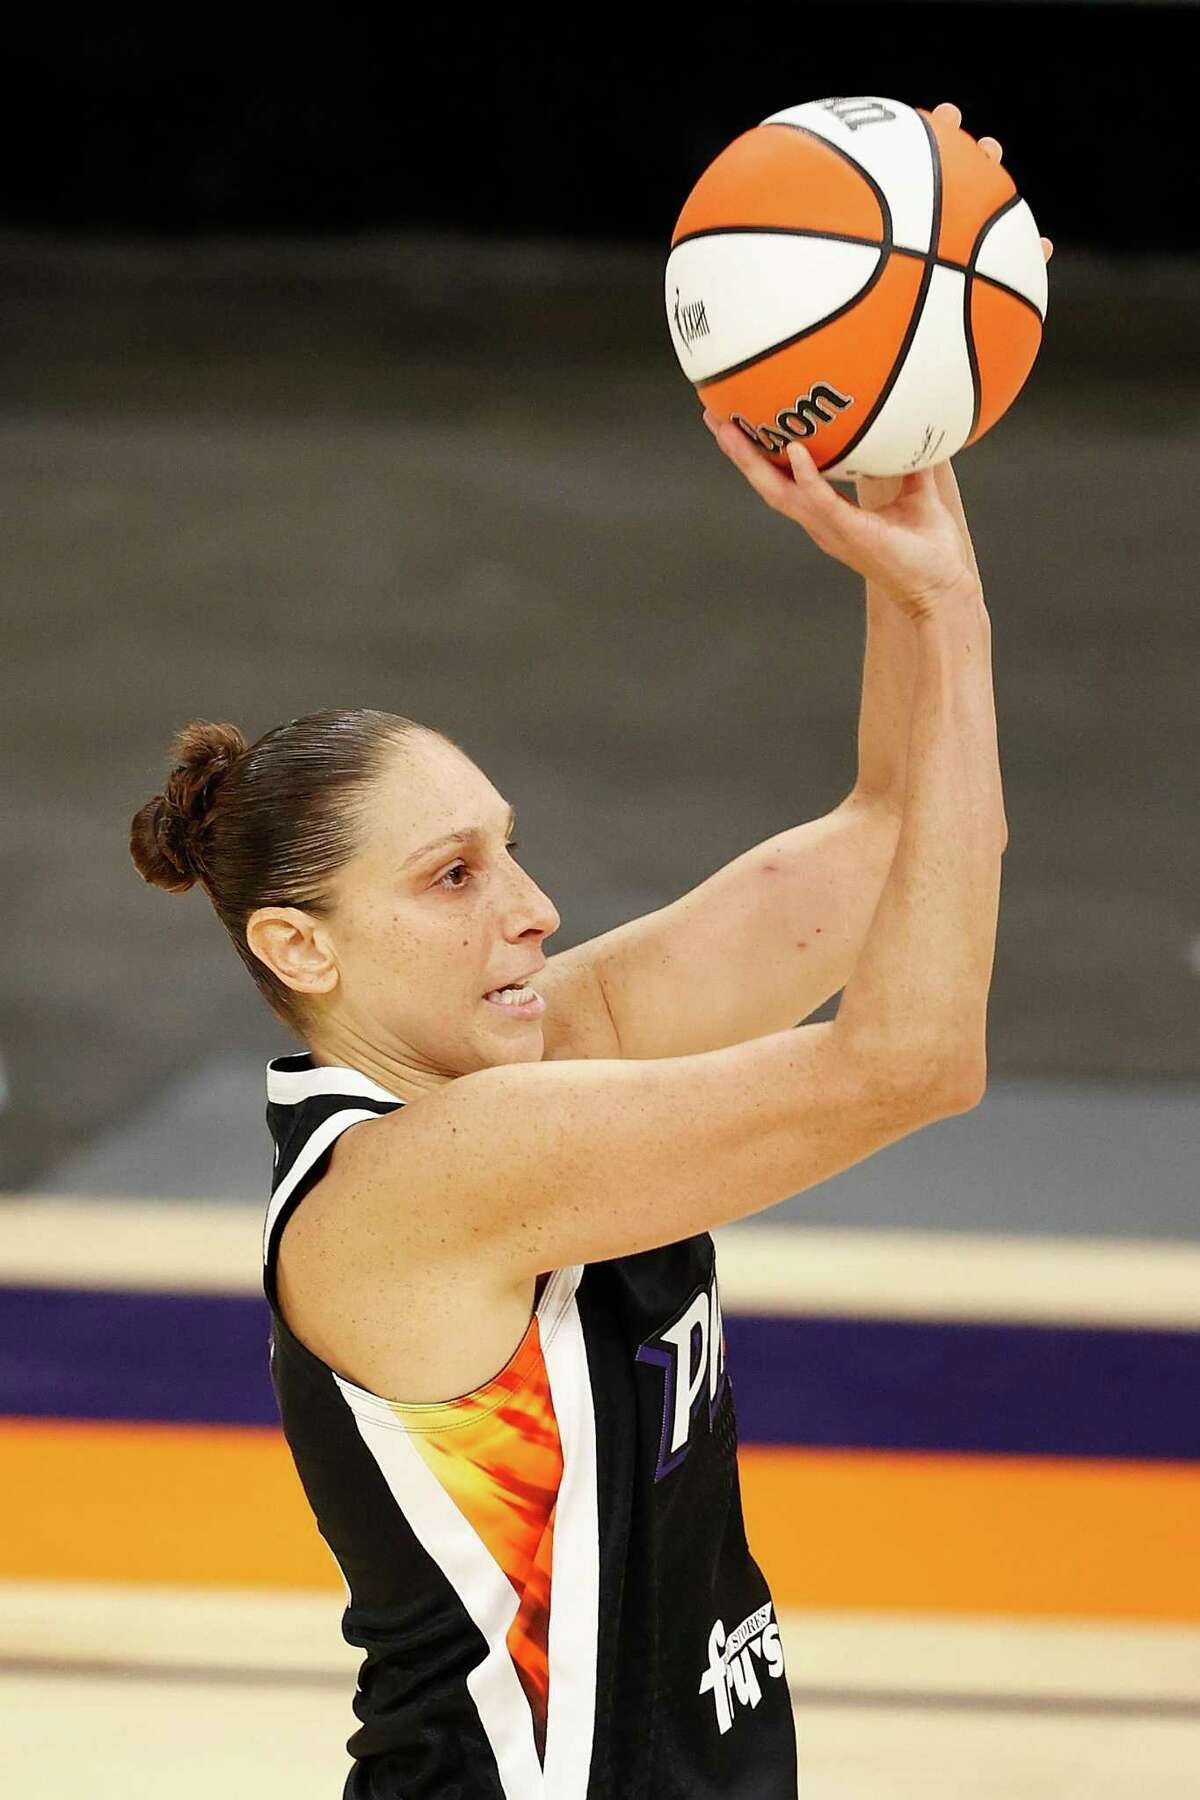 PHOENIX, ARIZONA - JUNE 27: Diana Taurasi #3 of the Phoenix Mercury attempts a three-point shot against the Los Angeles Sparks during the second half of the WNBA game at Phoenix Suns Arena on June 27, 2021 in Phoenix, Arizona. NOTE TO USER: User expressly acknowledges and agrees that, by downloading and or using this photograph, User is consenting to the terms and conditions of the Getty Images License Agreement. (Photo by Christian Petersen/Getty Images)